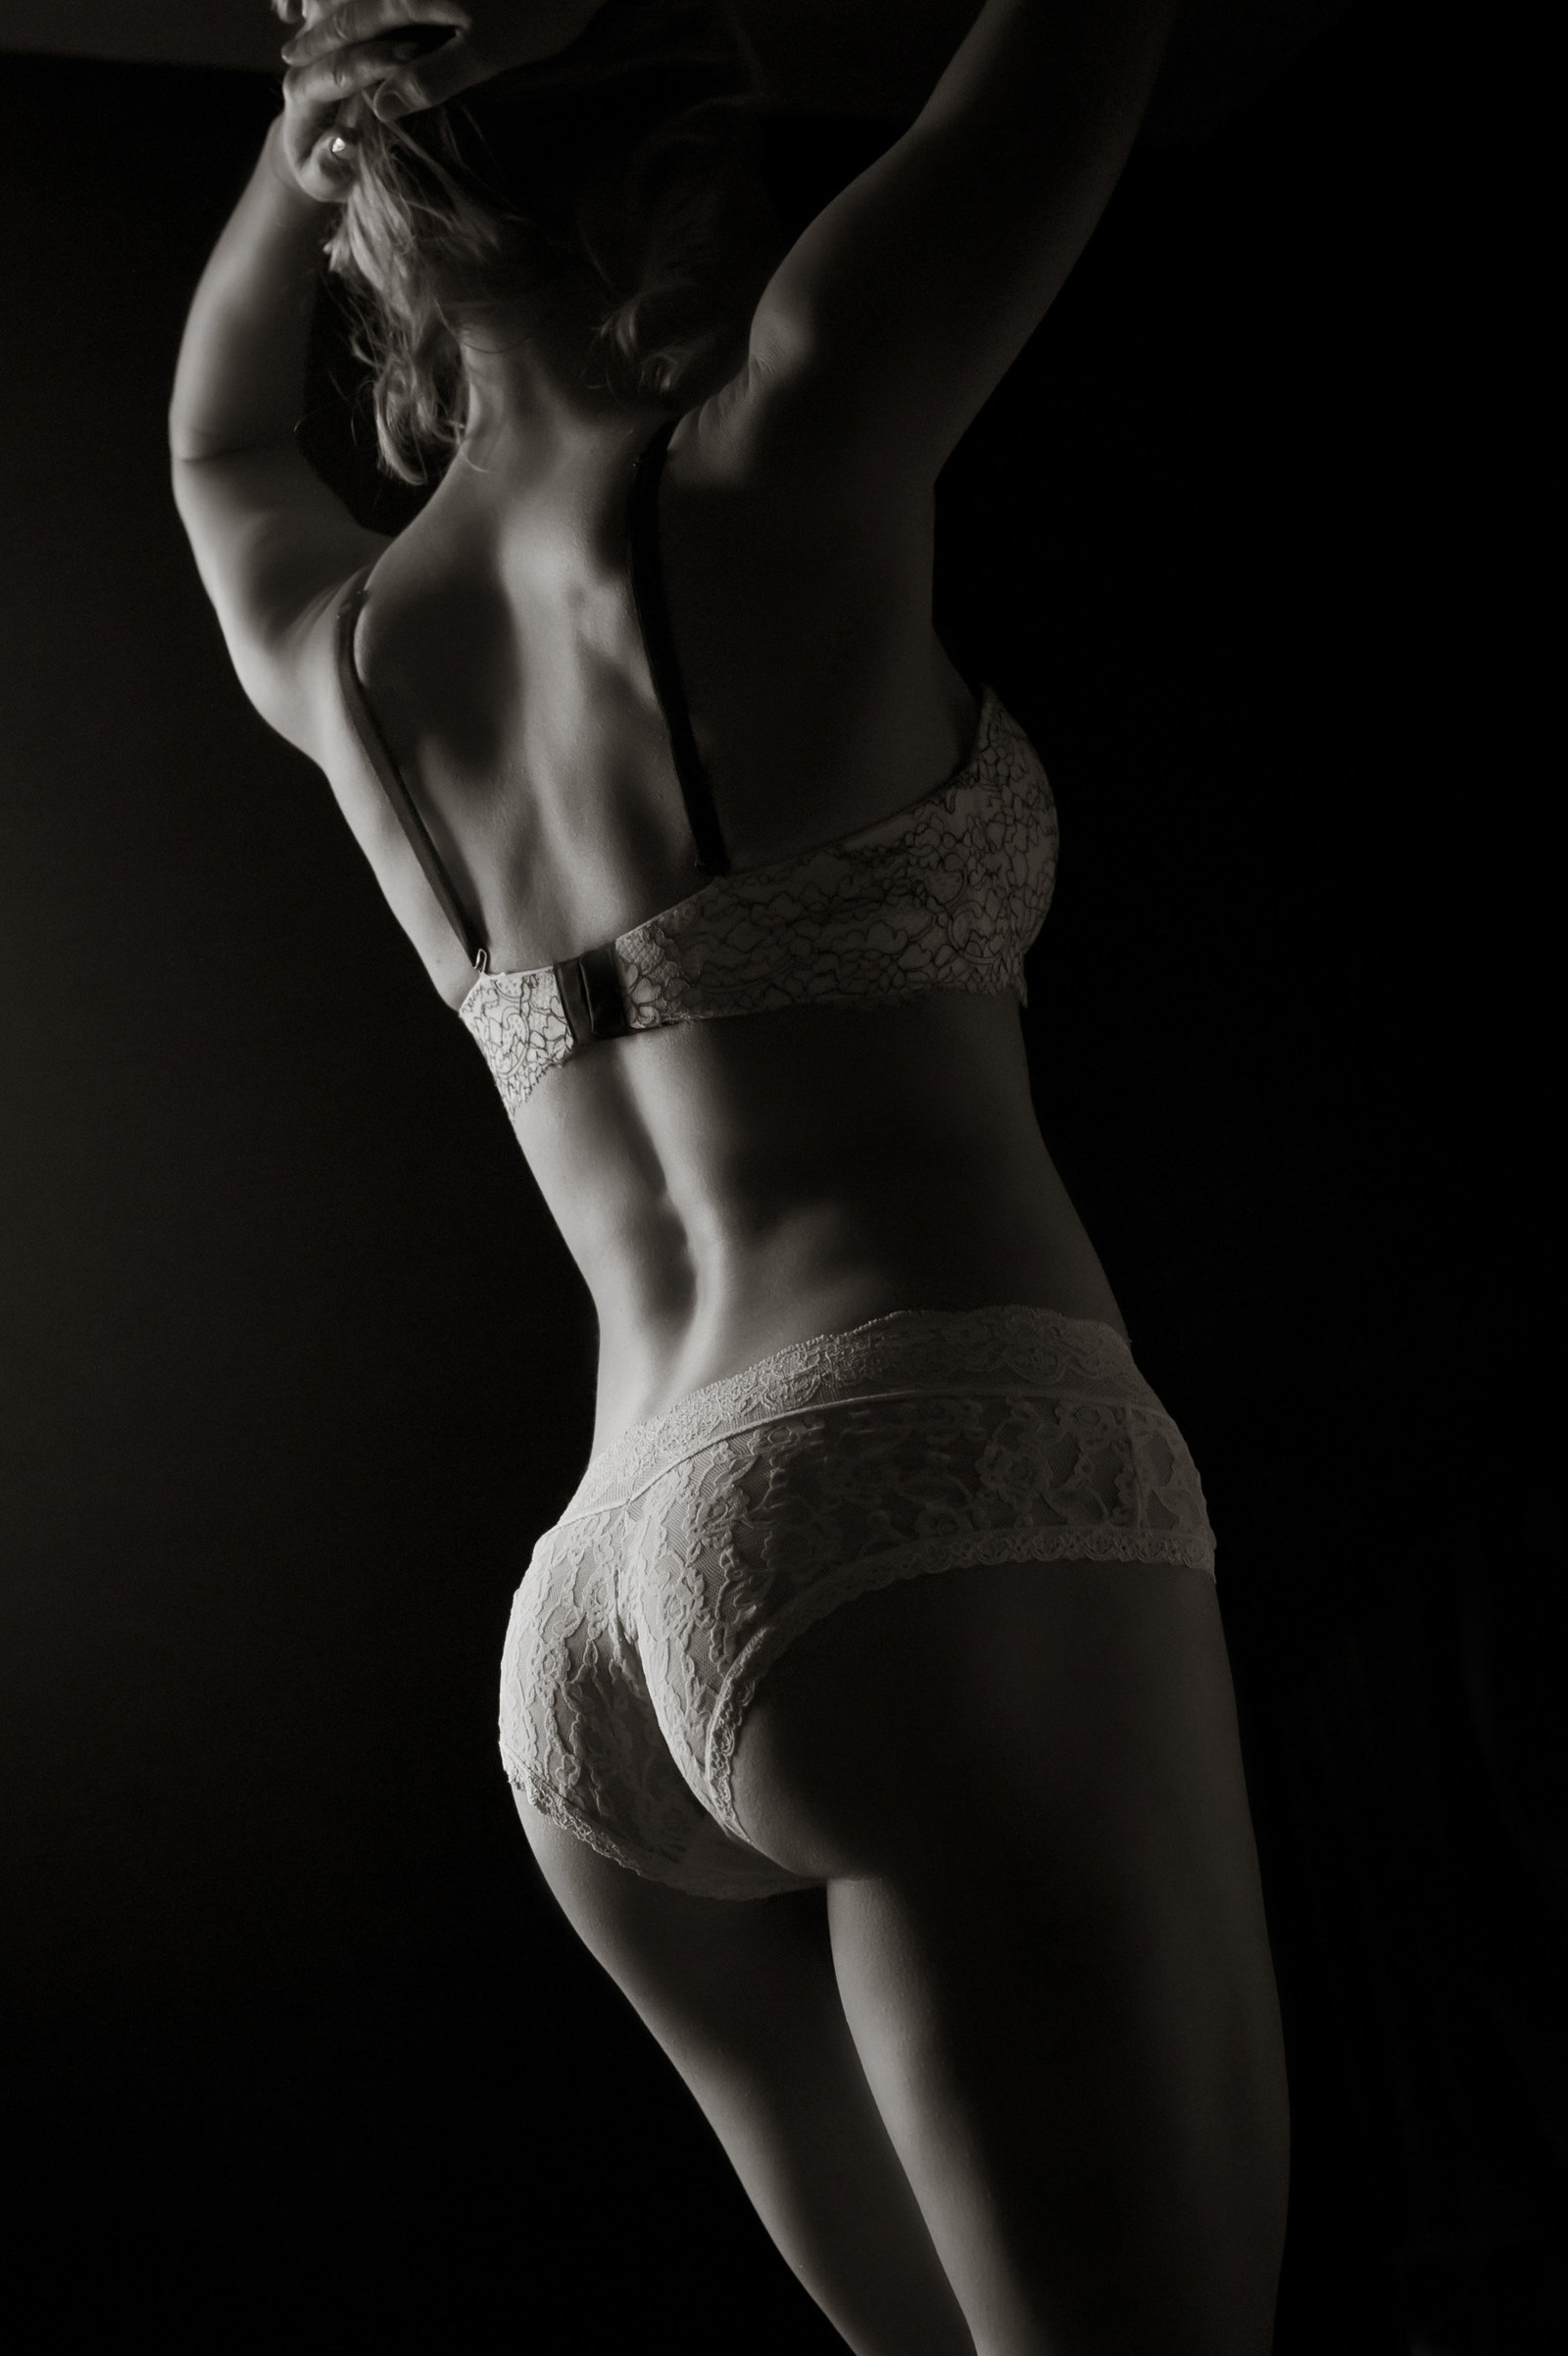 minneapolis-boudoir-photography-624